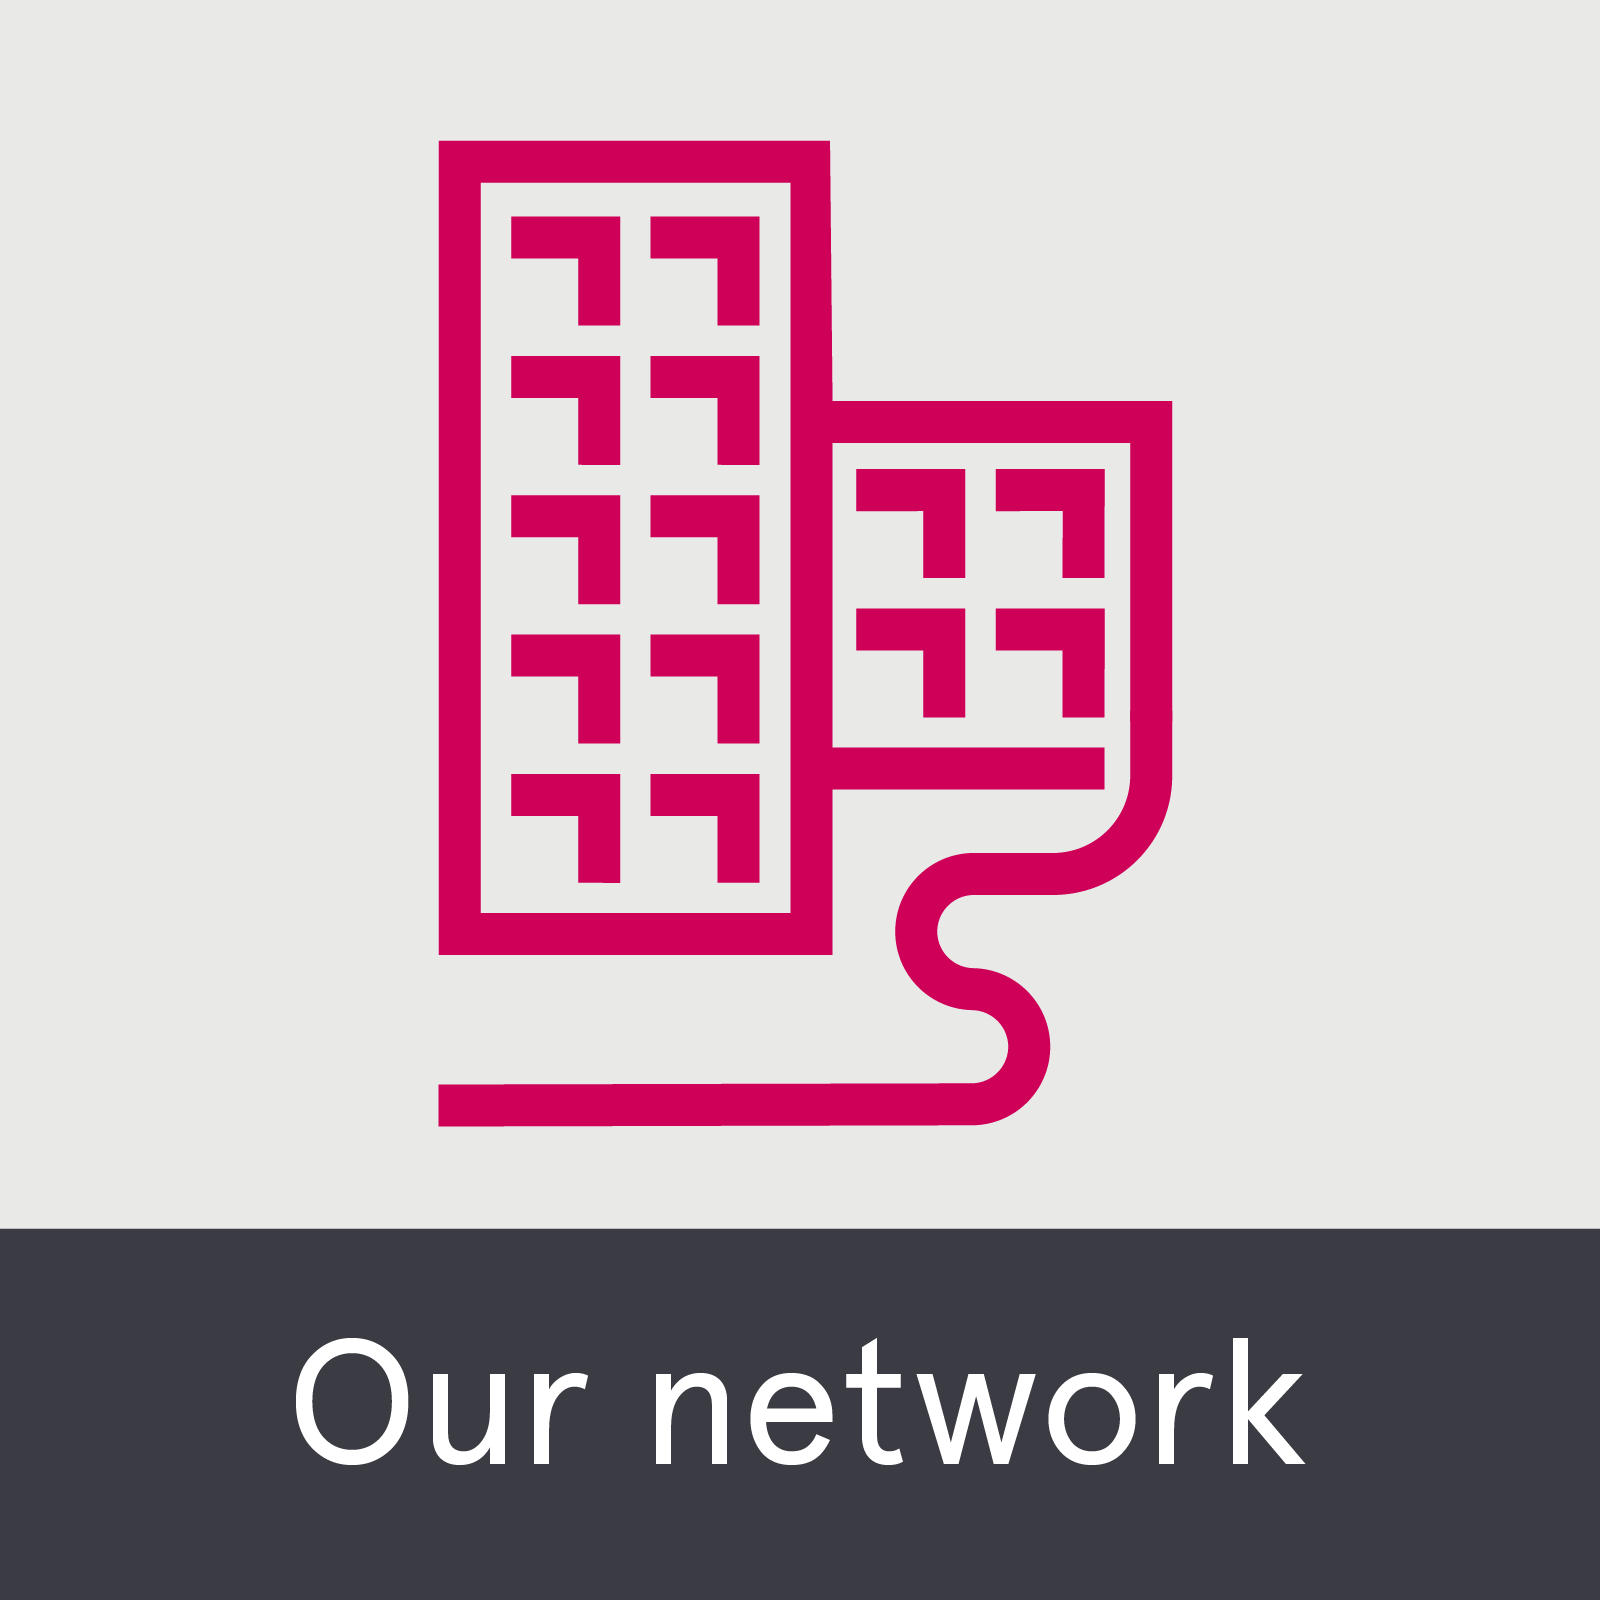 Our network